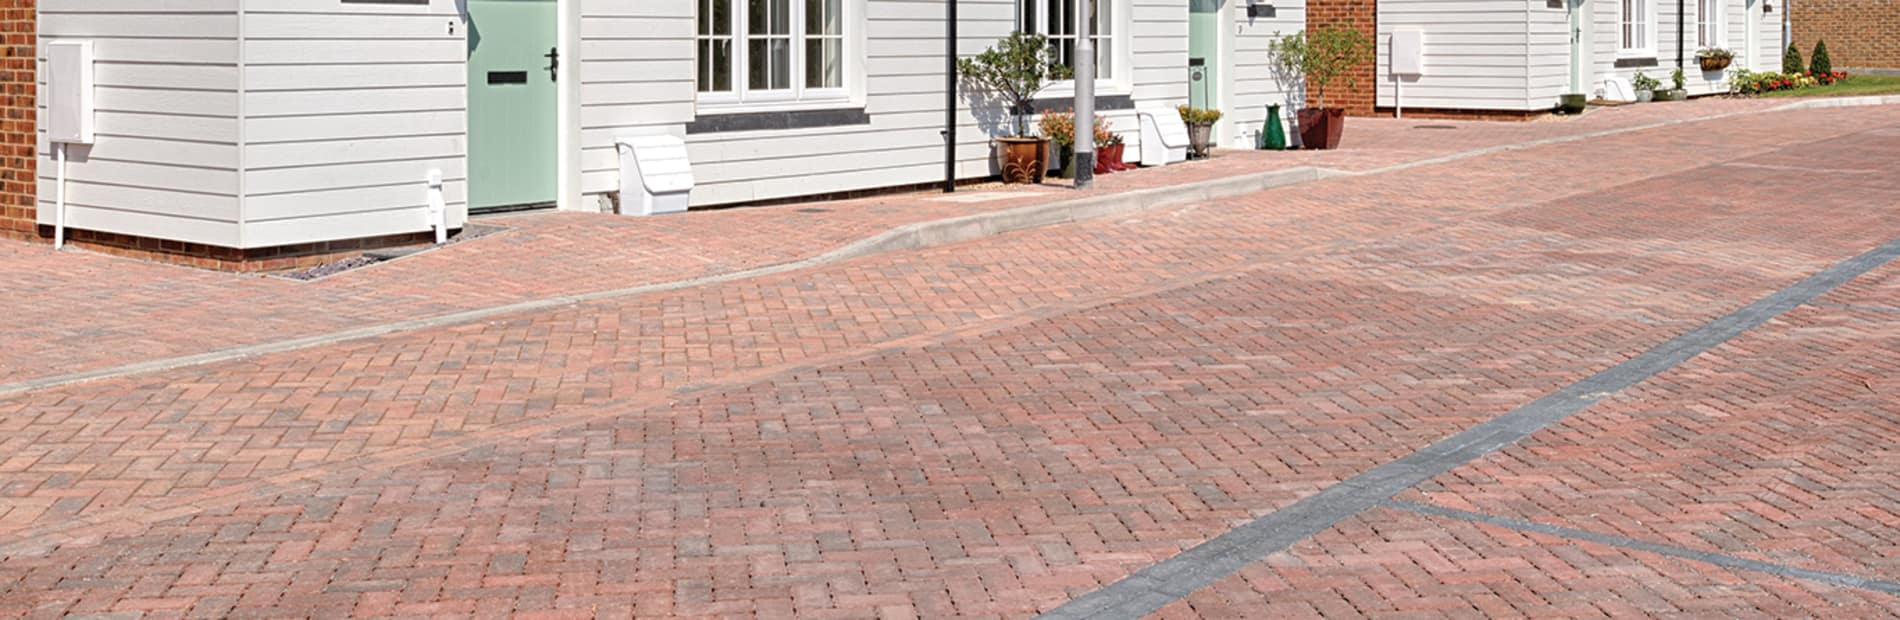 Red block paving in front of white house.